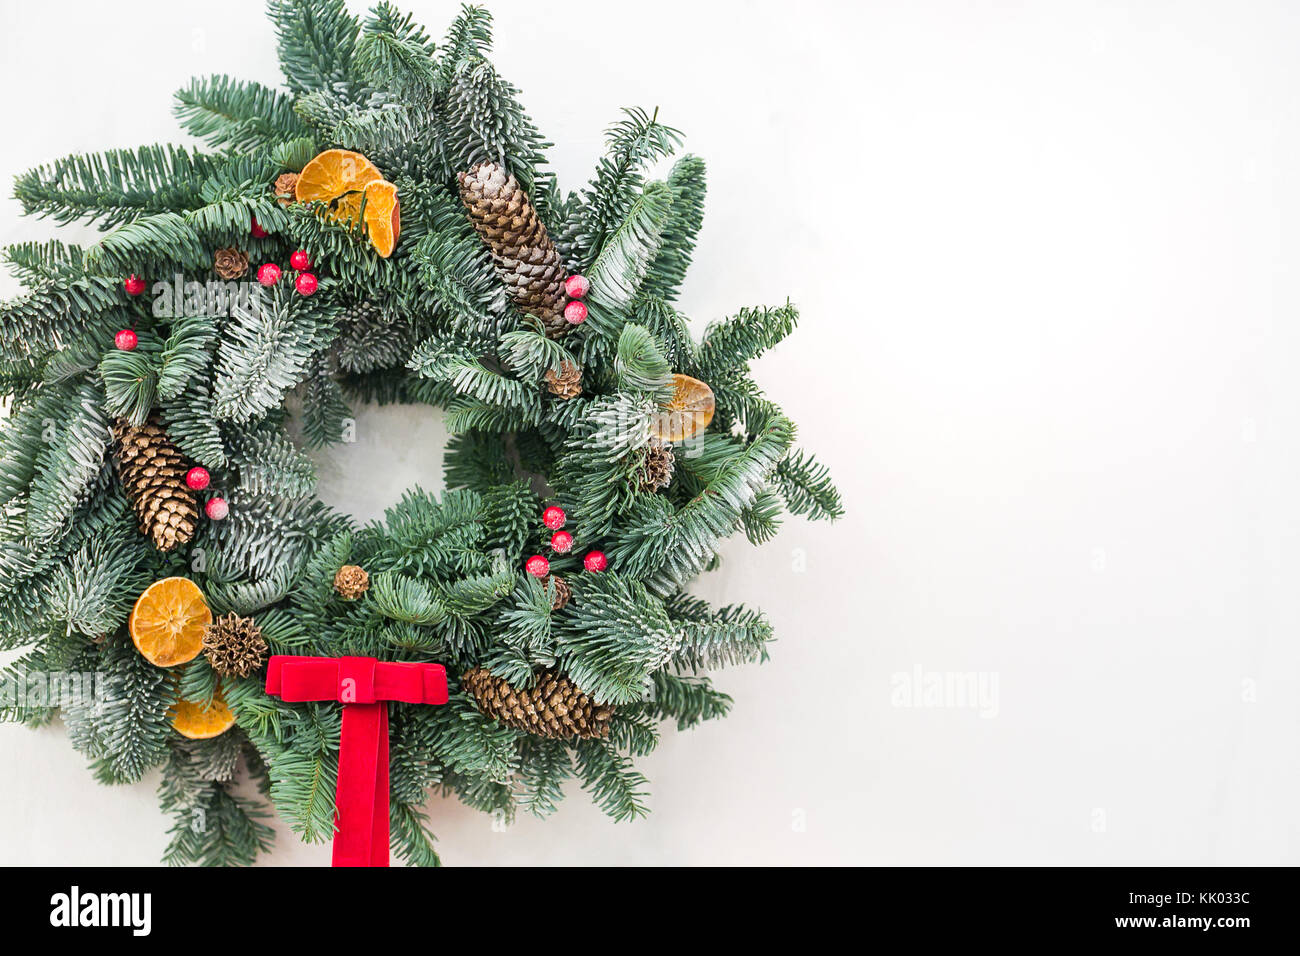 festivities, greeting, decor concept. marvelous christmas wreath made of conifer tree and embelished with dried - Stock Image